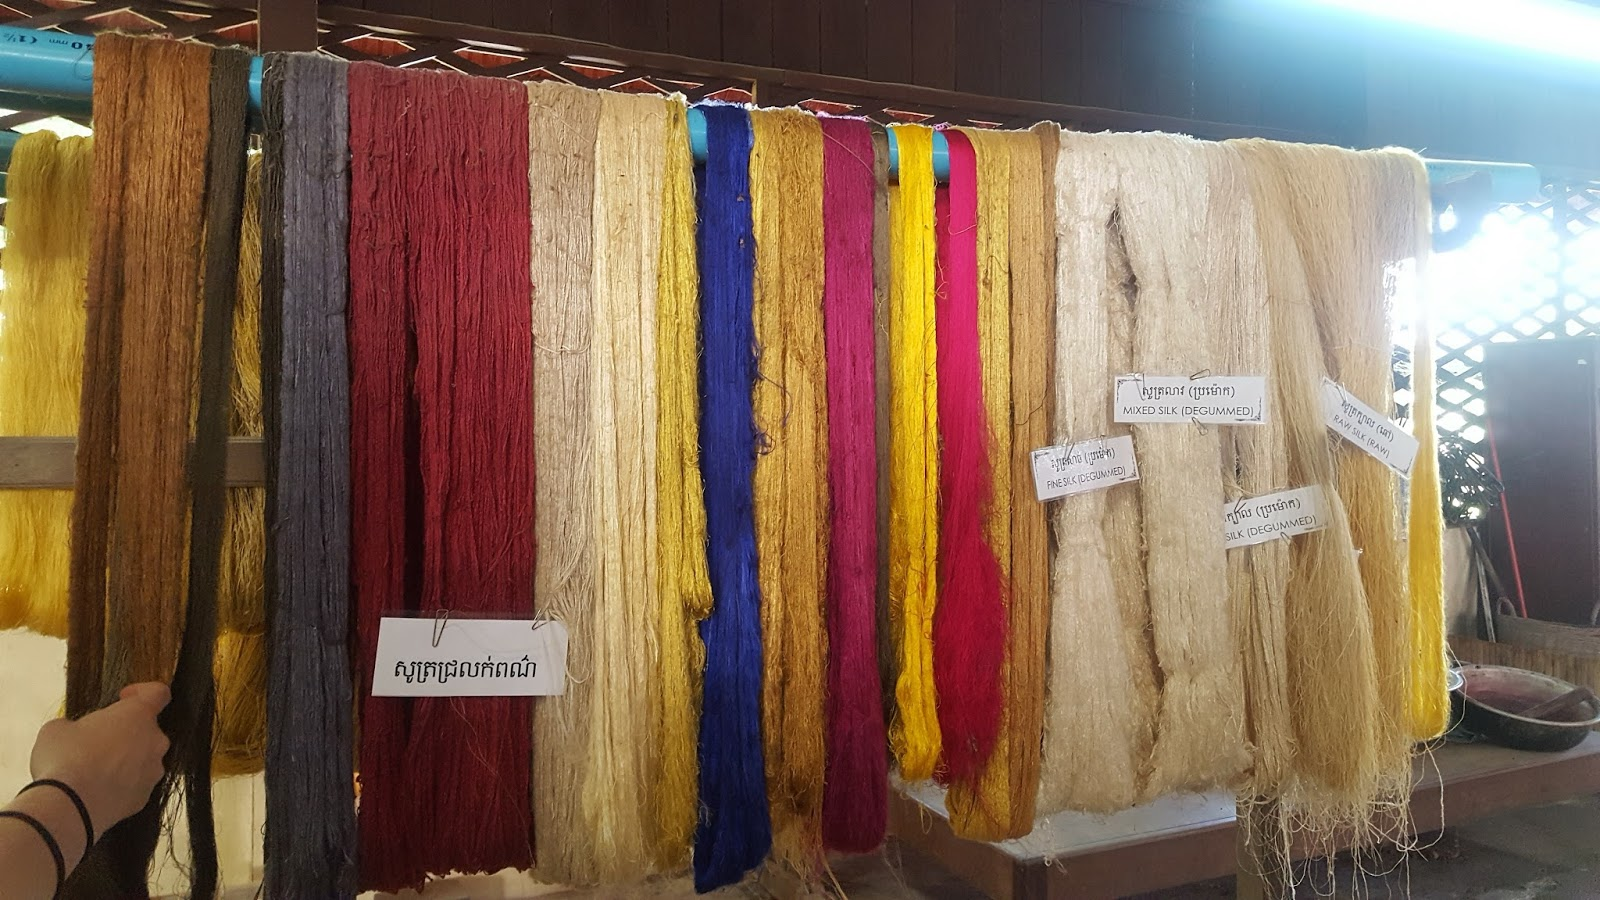 sericulture raw silk Sericulture like wool, silk is a natural protein fiber the larvae of the bombyx mori moth, commonly known as silkworms raw silk fibers are more ribbon-like.